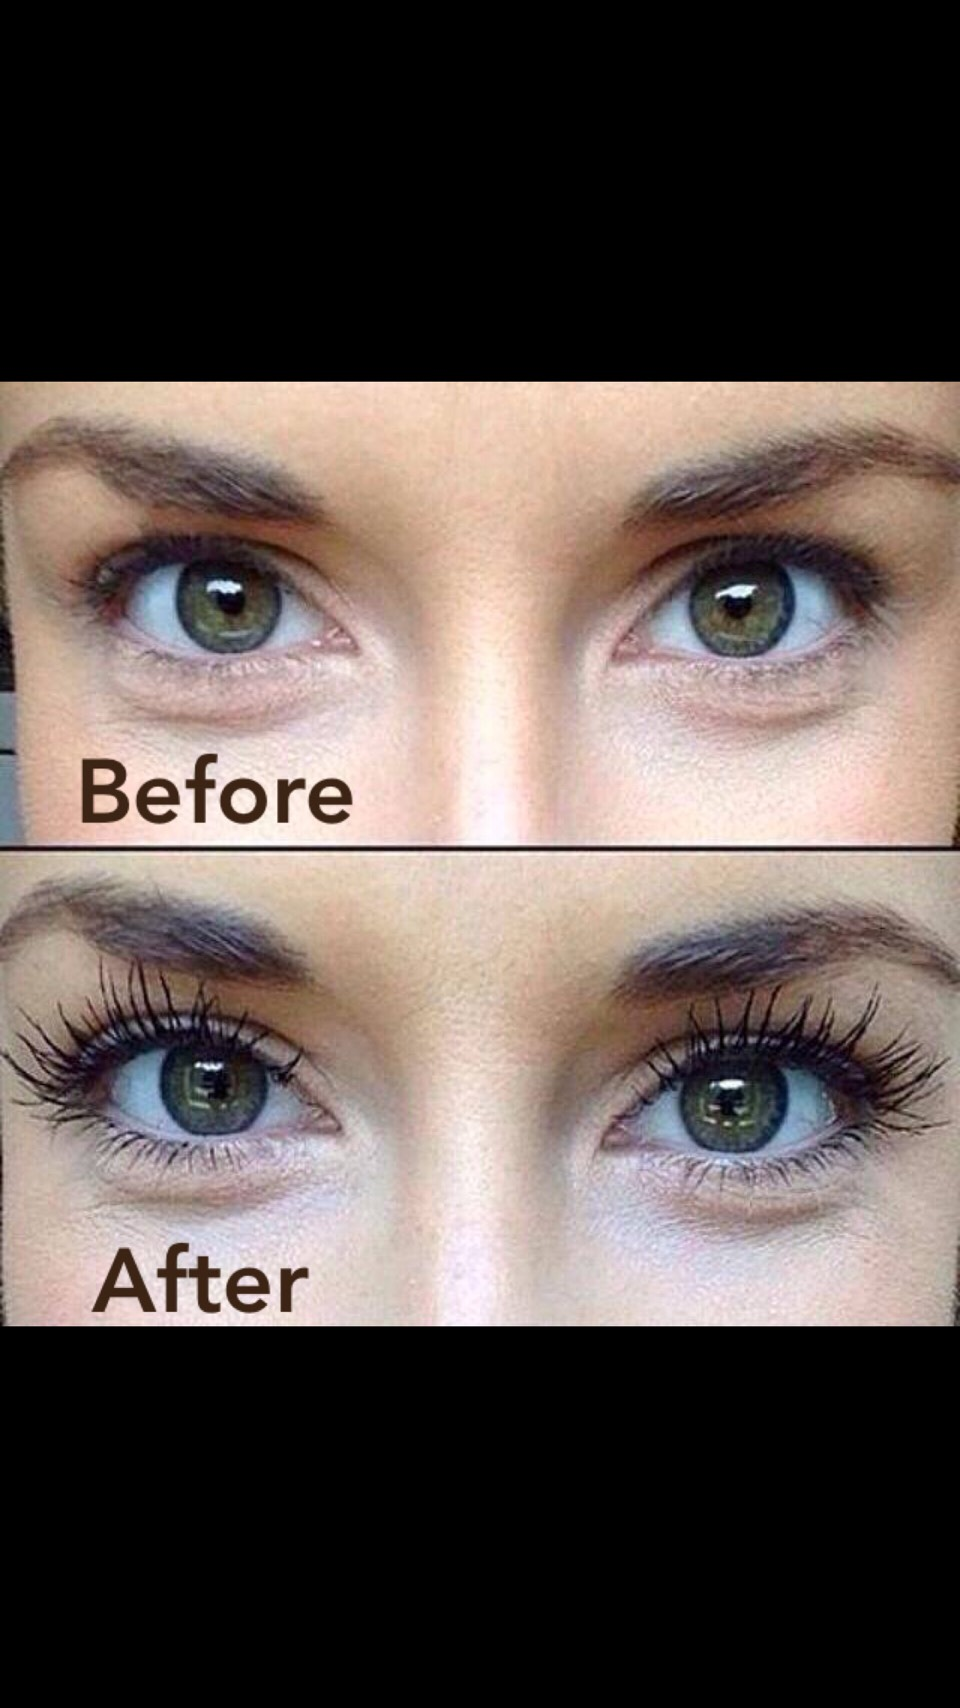 These are OMG lashes ladies!!